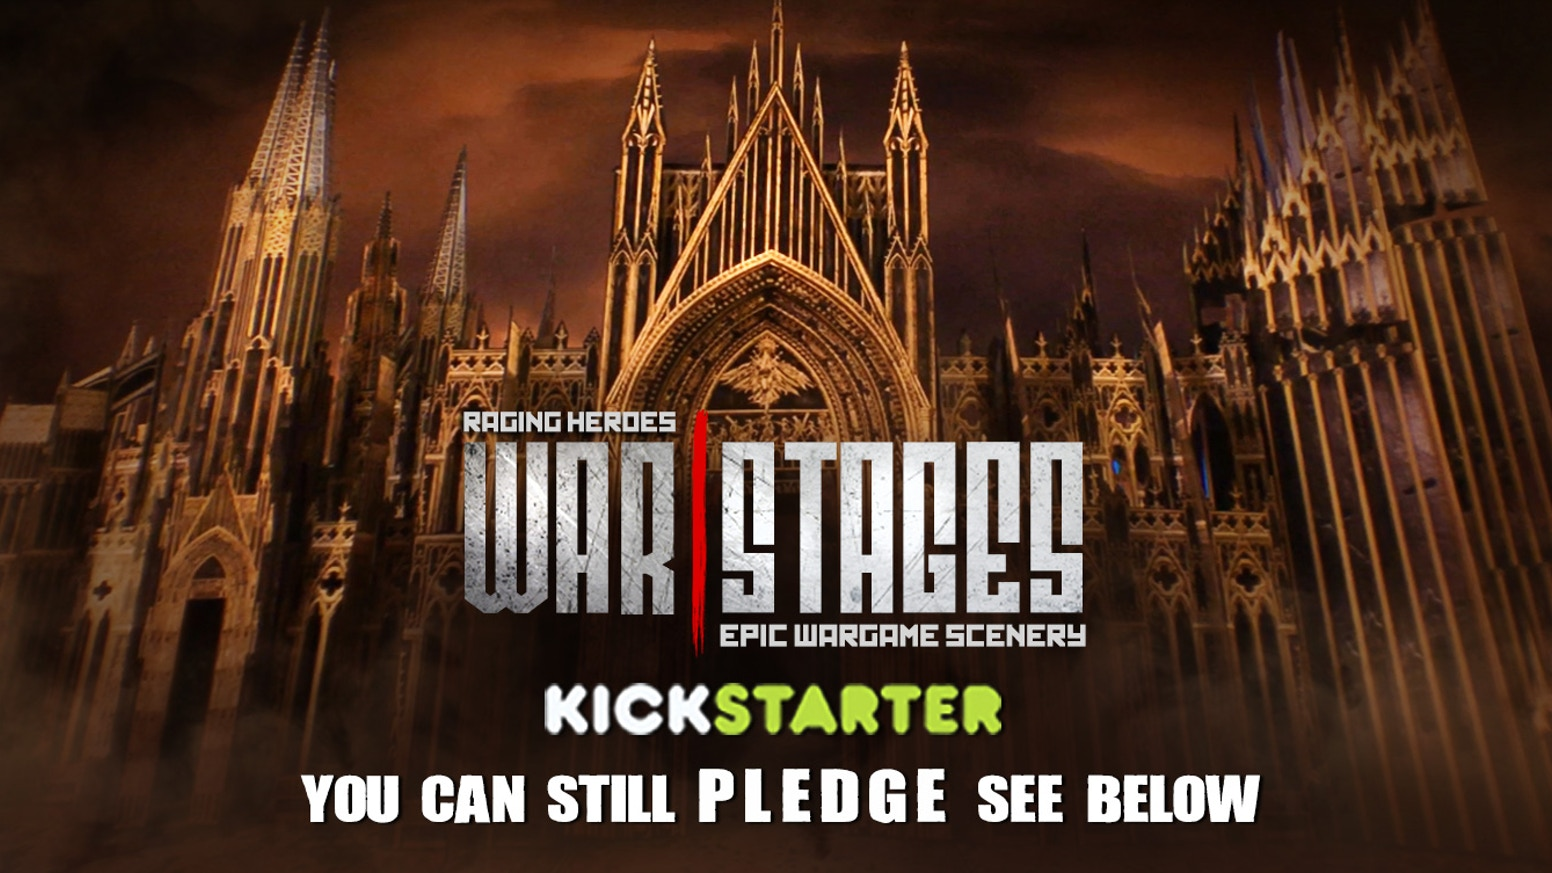 WarStages is THE Scenery System for 28mm scale miniatures you've been waiting for: Ultra-Modular, Epic, Flexible, Gorgeous!